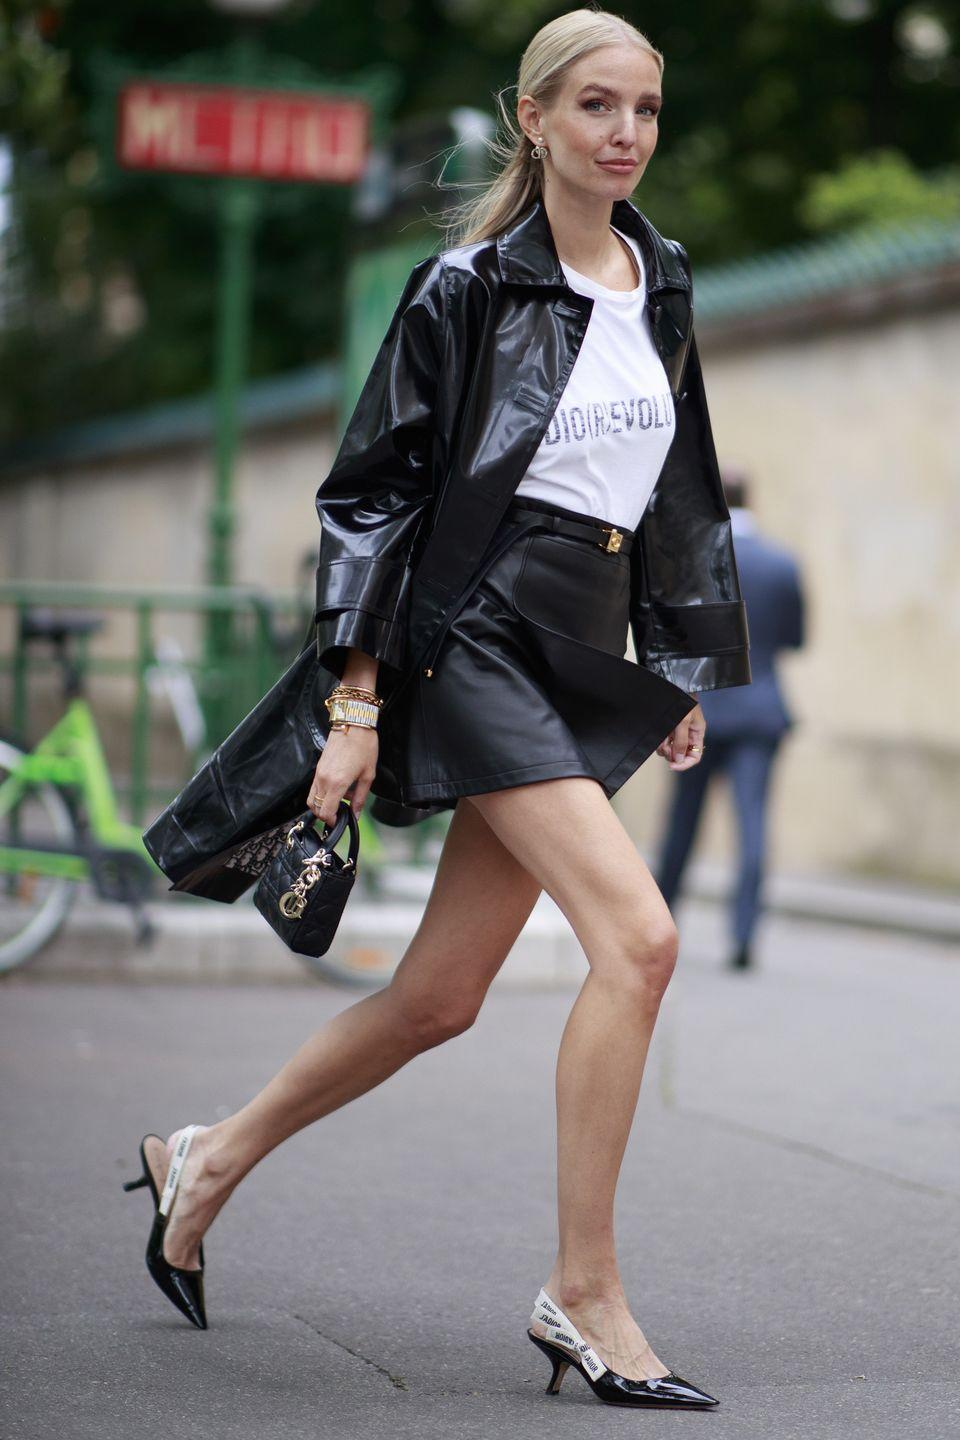 <p>A patent trench coat is a true investment piece for any wardrobe, as it can be styled with pretty much anything, any time of year. Pair it with your comfy jeans and trainers on the weekend, or with a mini skirt and heels for an event just like this fashion-week attendee.</p>